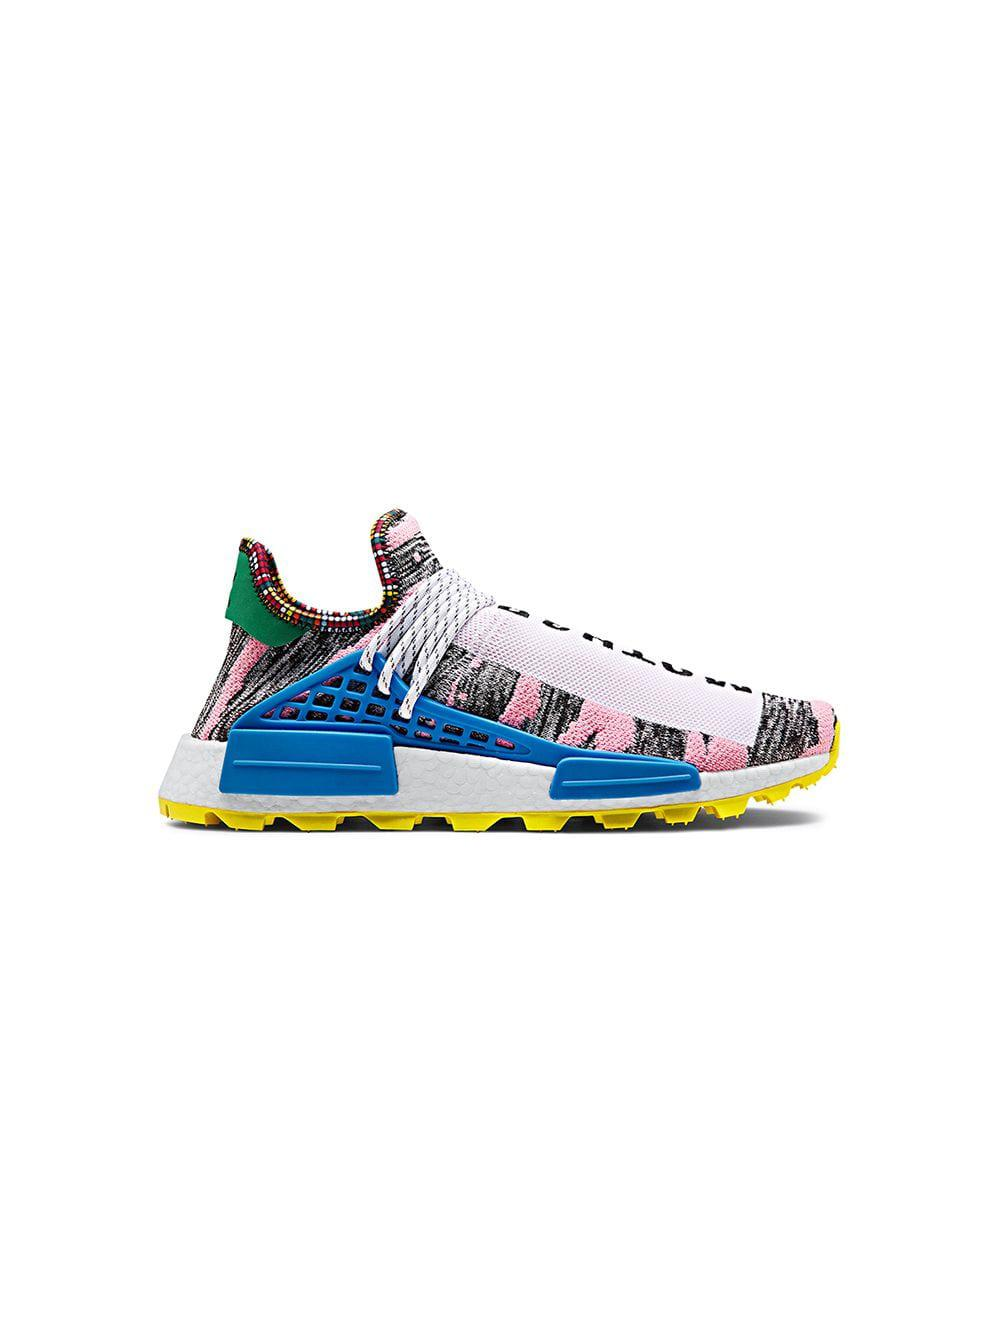 fdab762b4 Lyst - adidas Originals X Pharrell Williams Solarhu Nmd  motherland ...